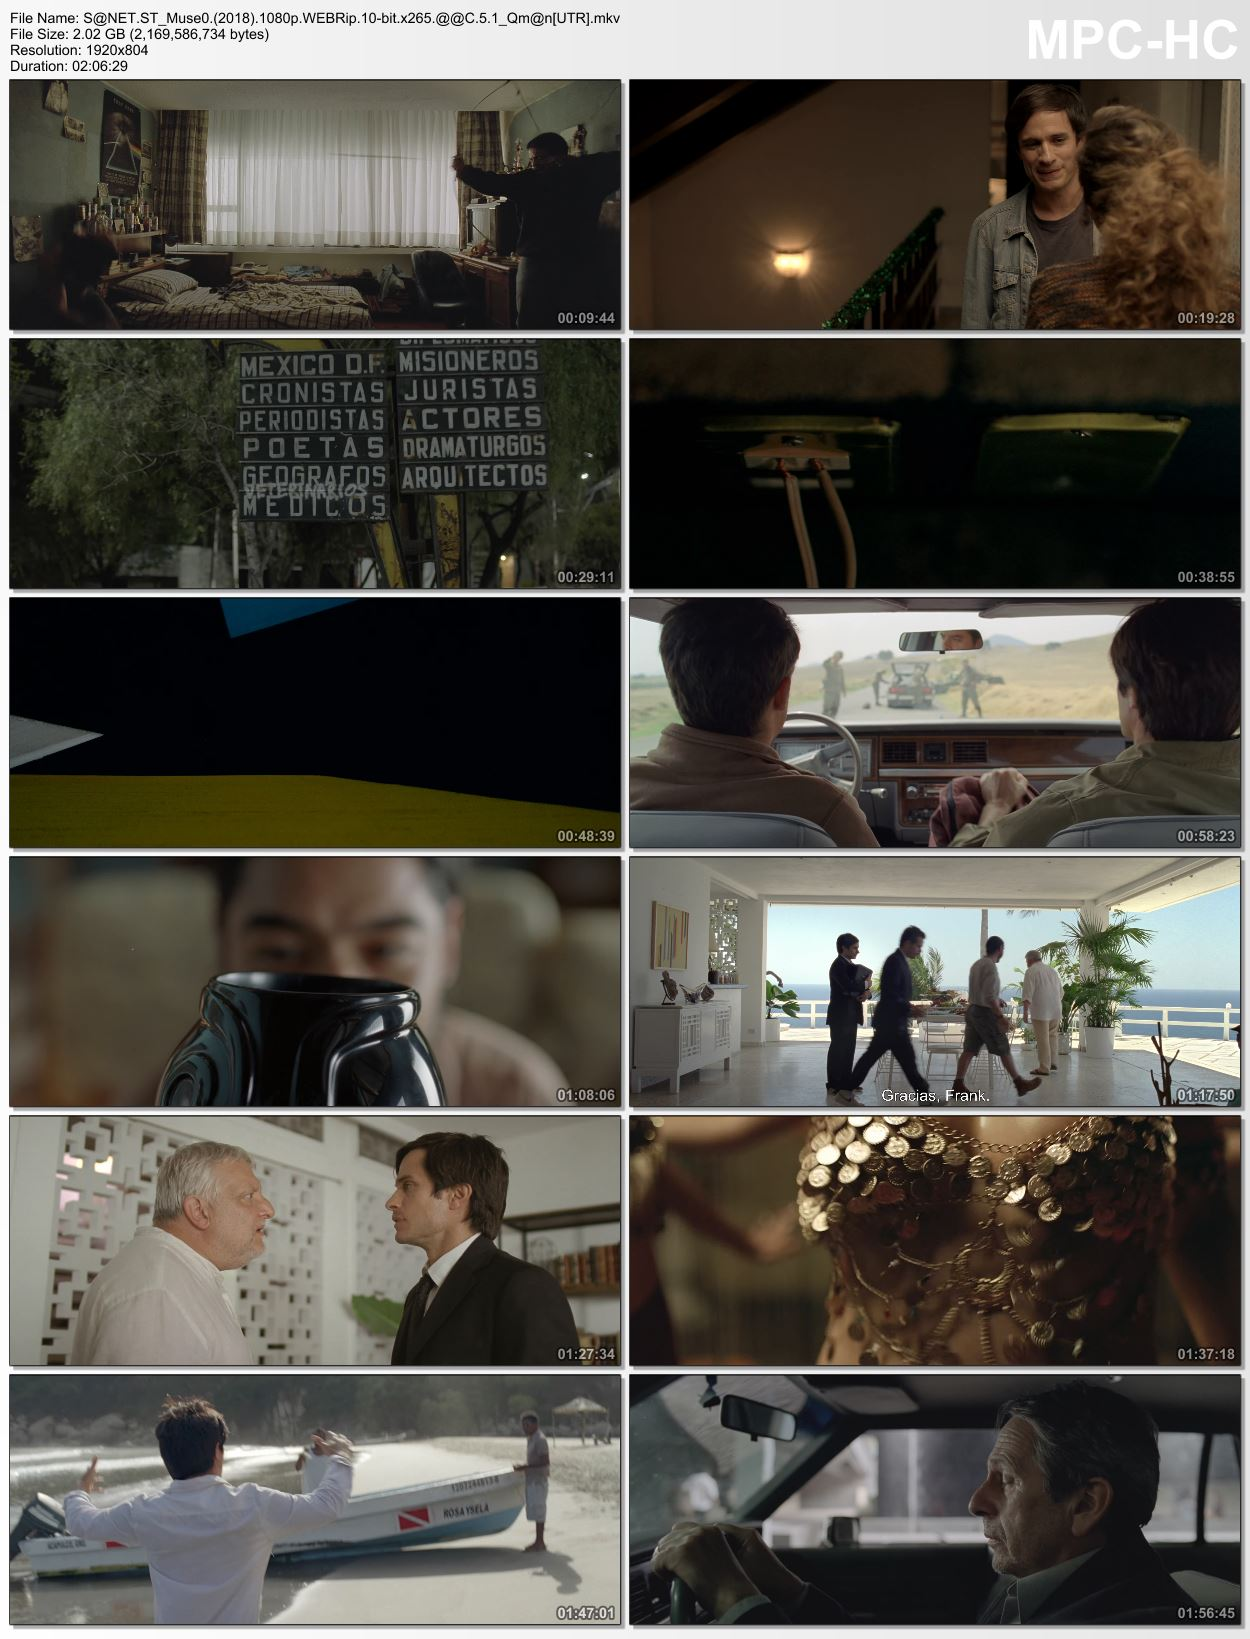 Download Museo 2018 1080p WEBRip 10-bit x265 HEVC AAC 5 1 Qman [UTR